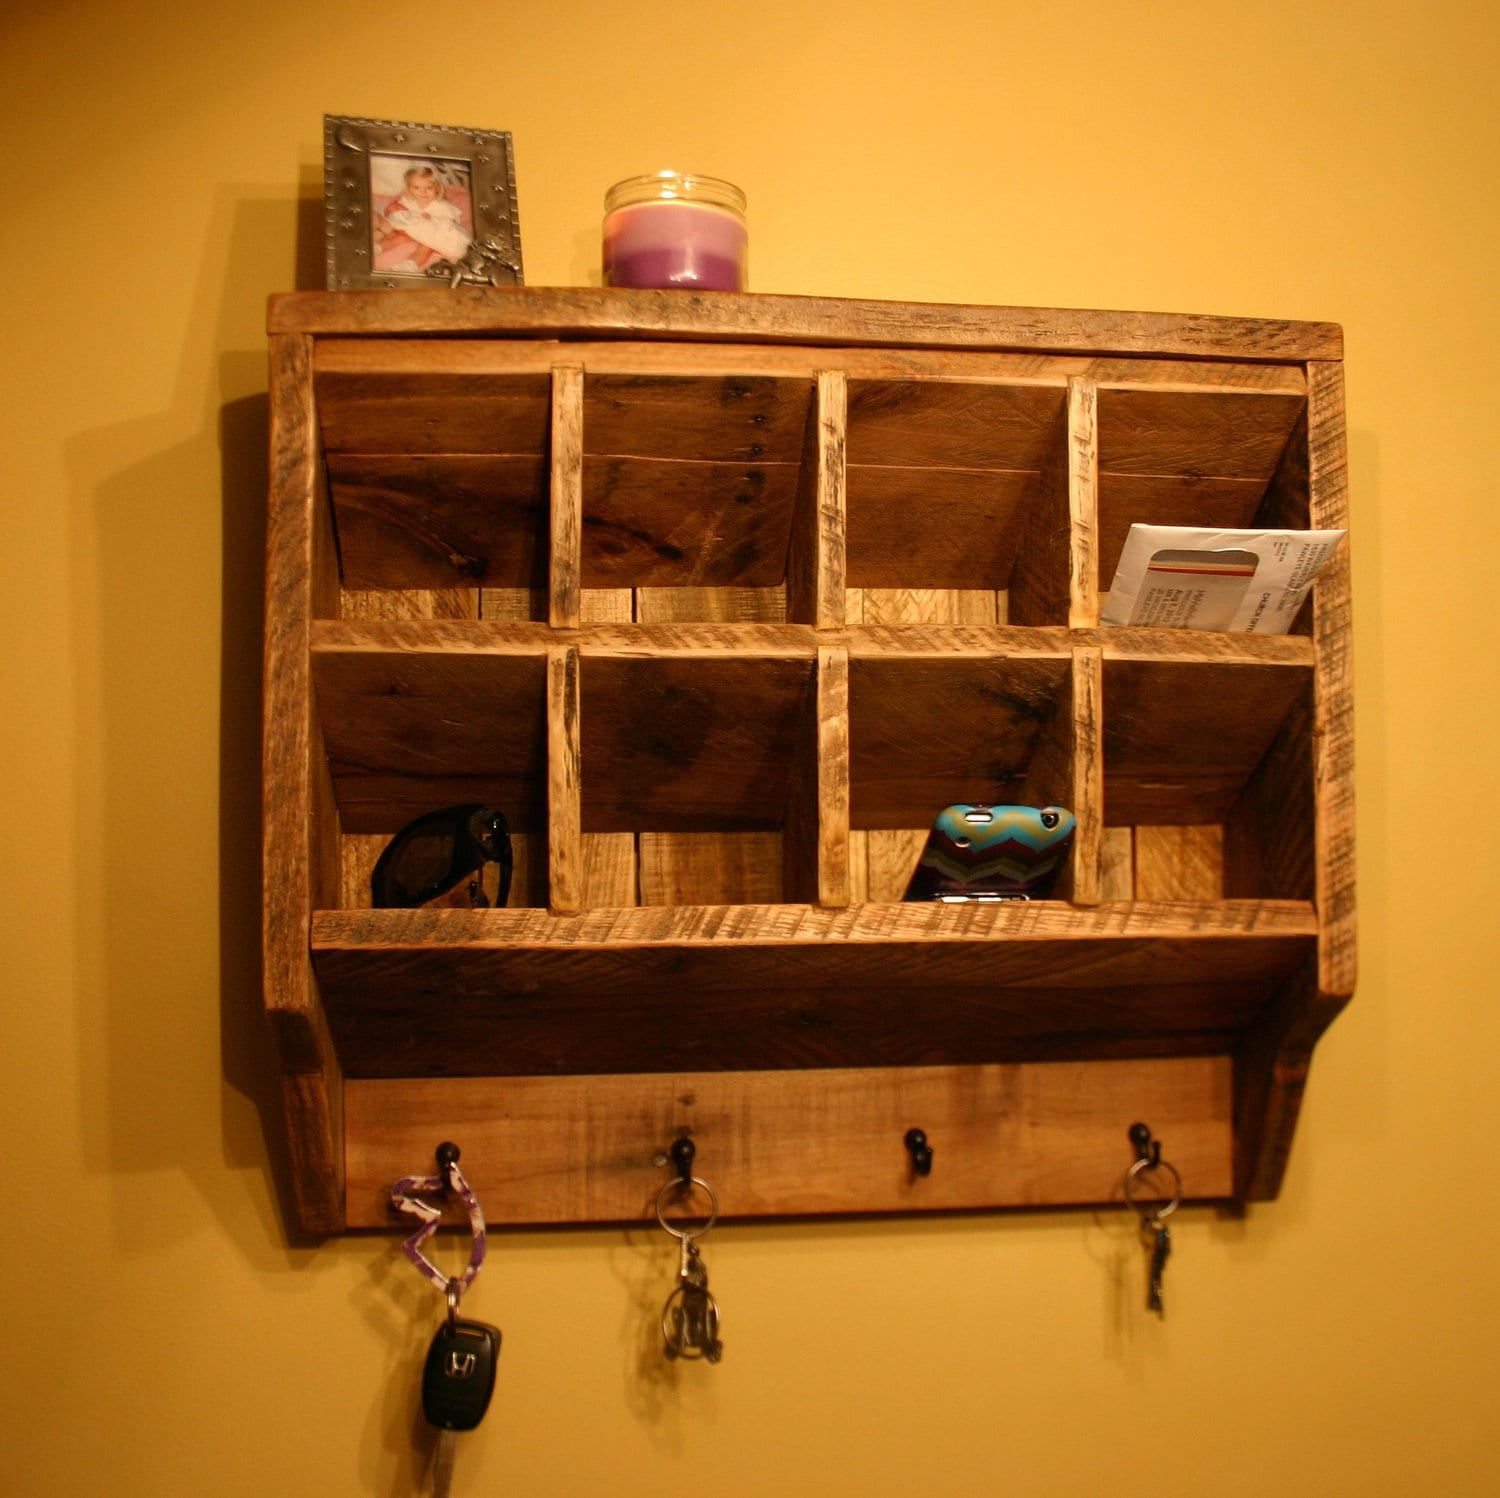 Key rack holder wall organizer reclaimed wood - Key racks for wall ...